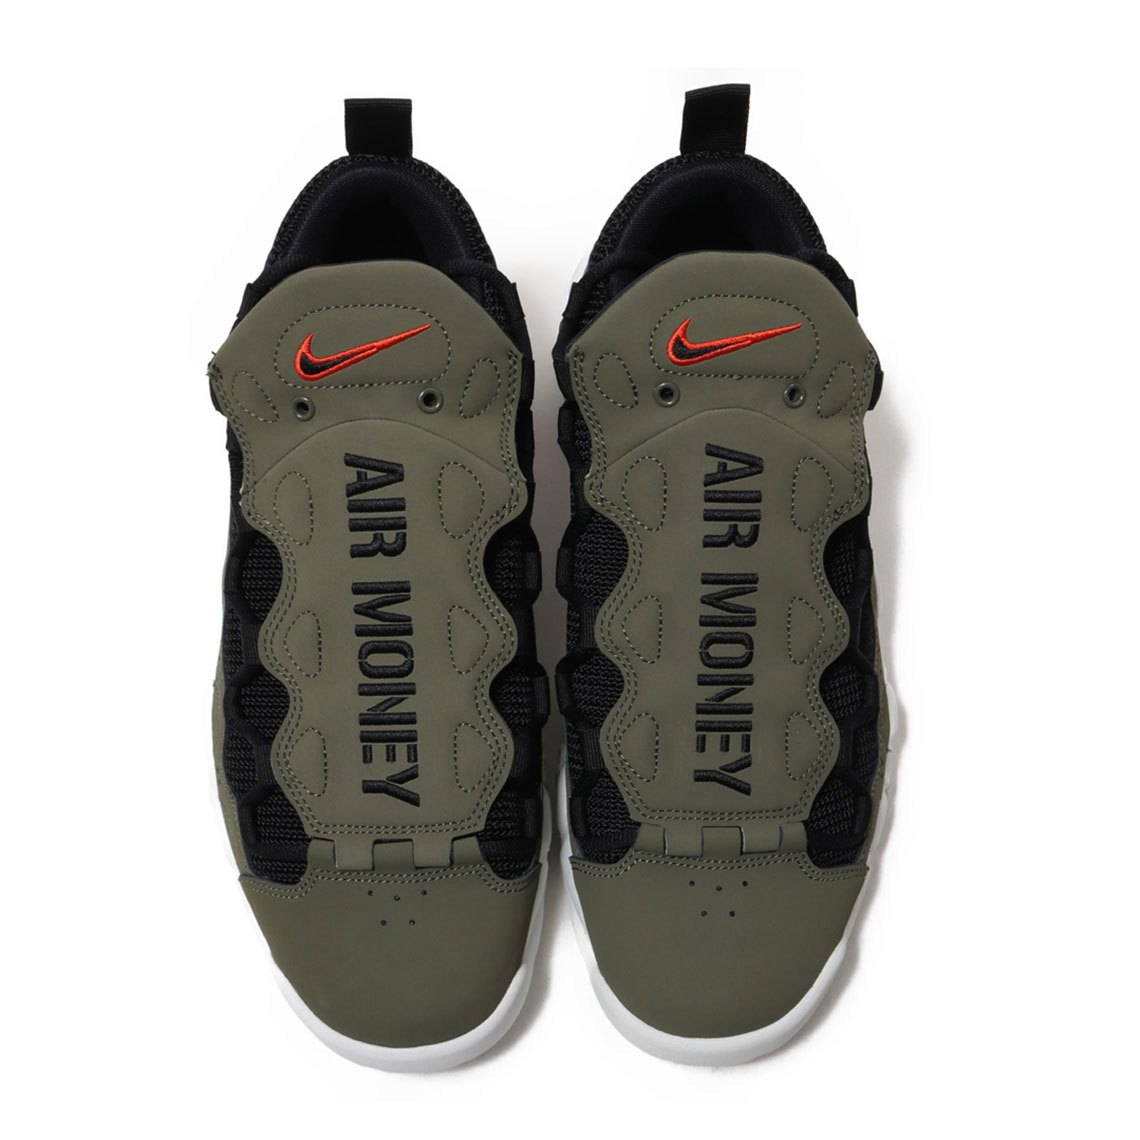 This Nike Air More Money Colorway Is as